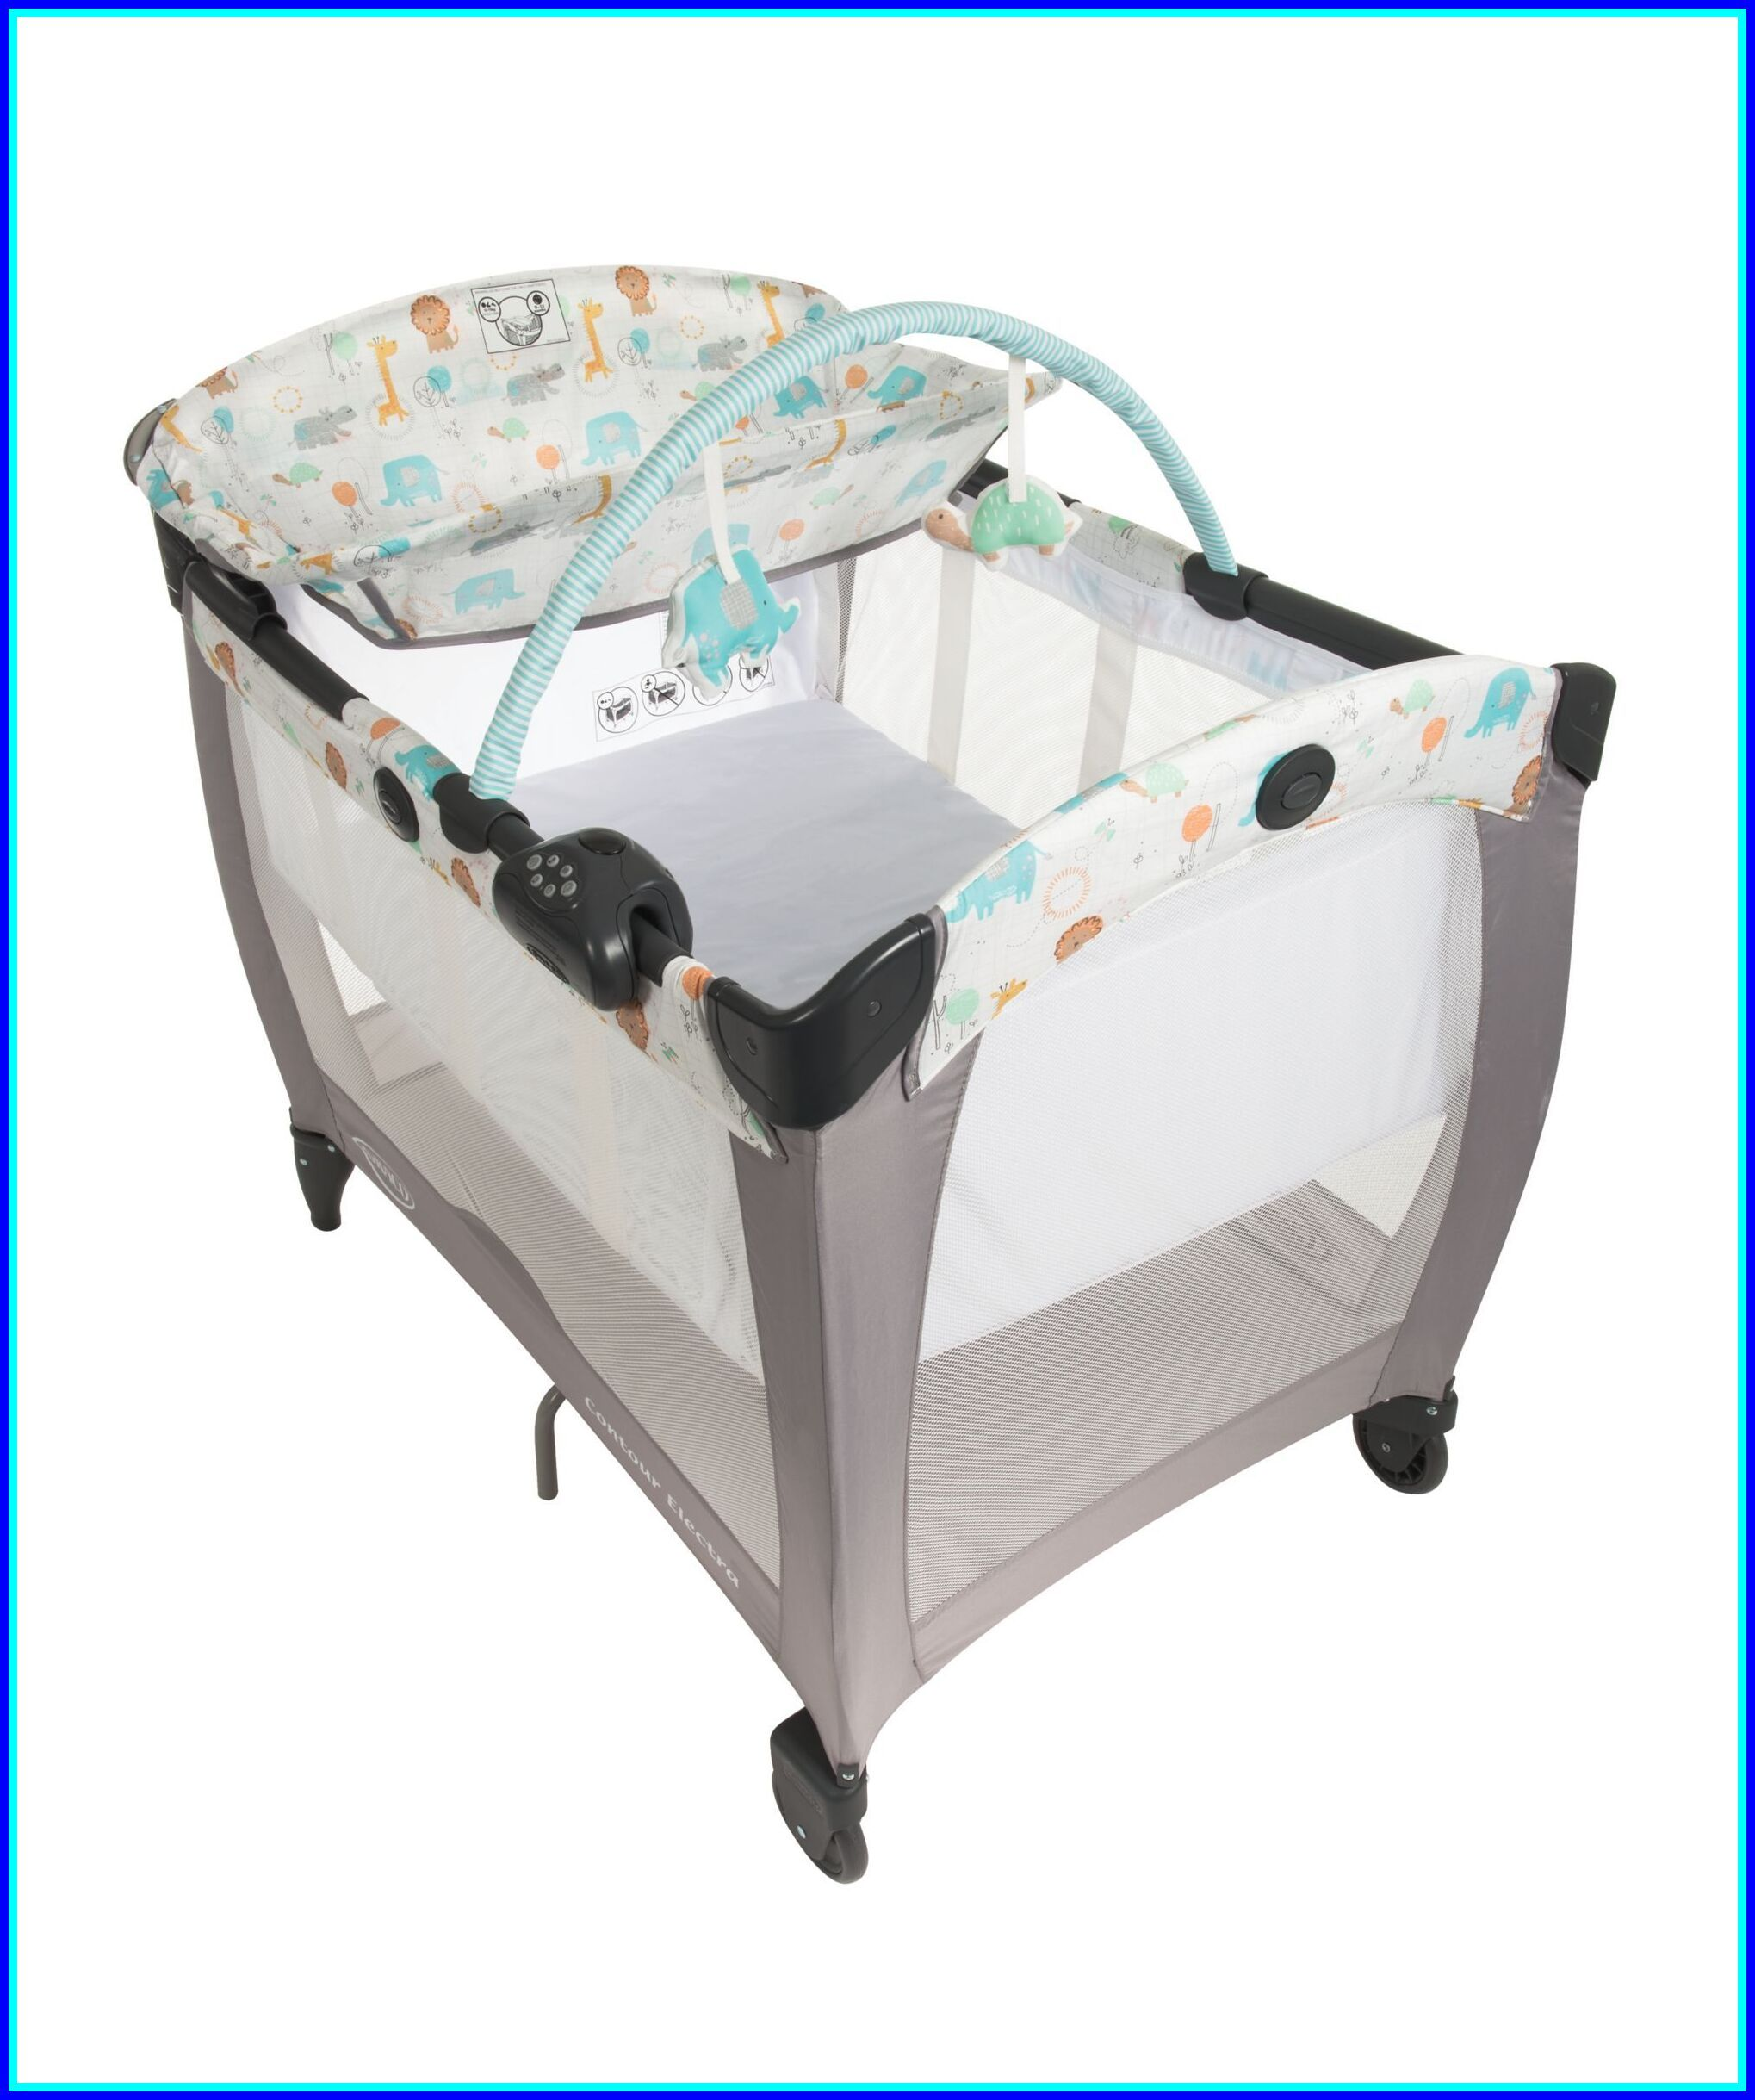 130 Reference Of Travel Crib Mattress For Sale In 2020 Travel Cot Travel Crib Crib Mattress